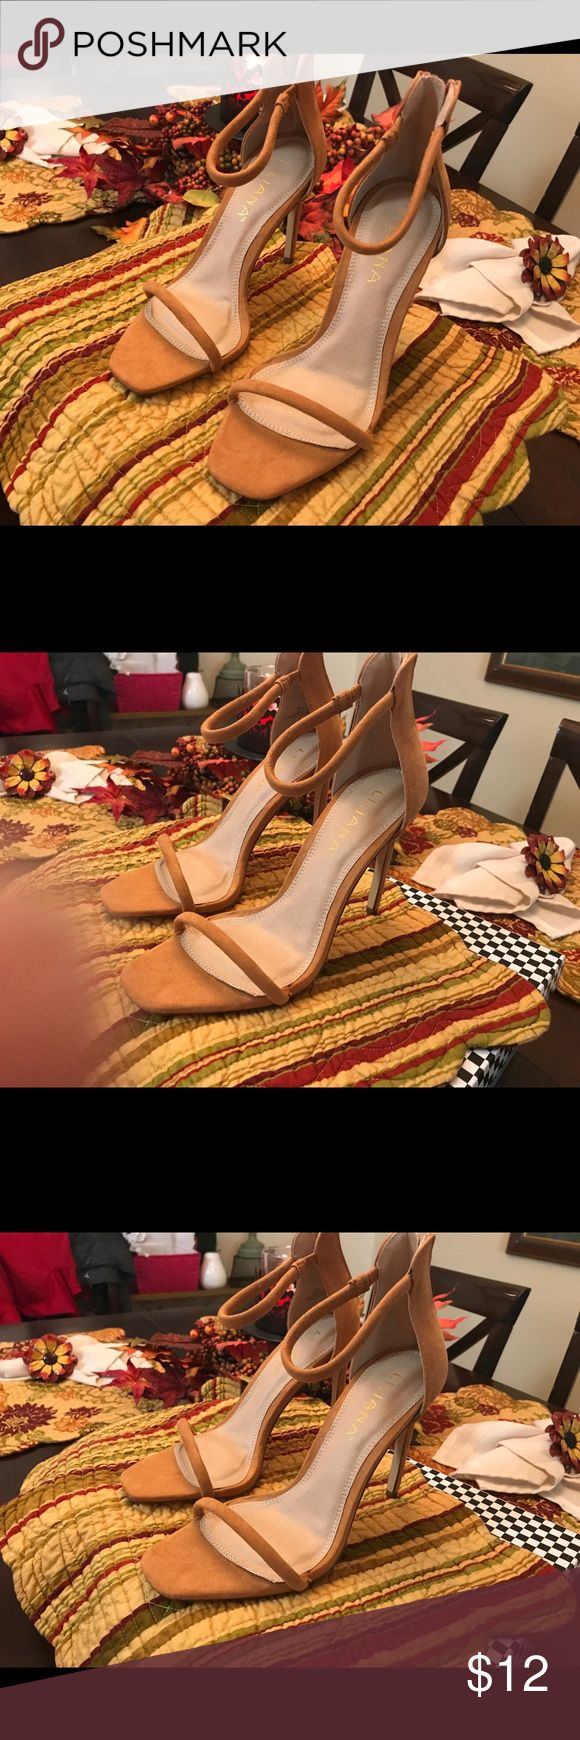 Camel strappy heels These shoes are so amazing . They look so good on. Only worn once still in great condition Shoes Heels